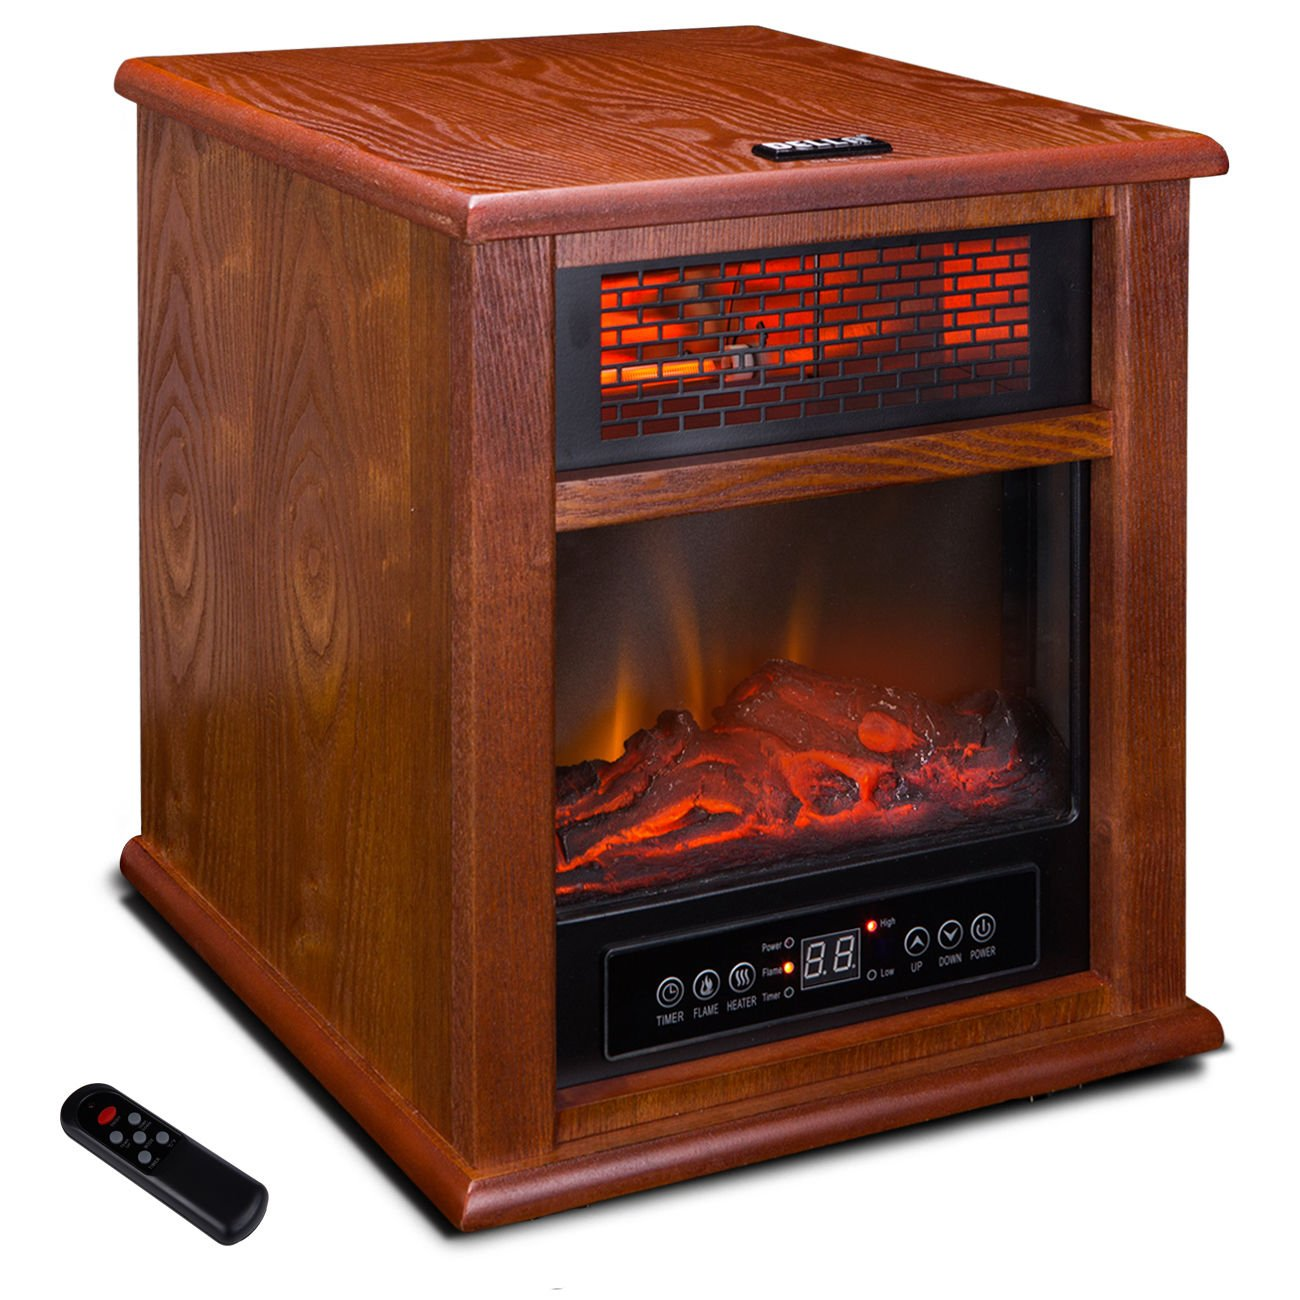 1500W Insert Electric Fireplace Quartz Infrared Heater Flame Caster with Remote + FREE E-Book